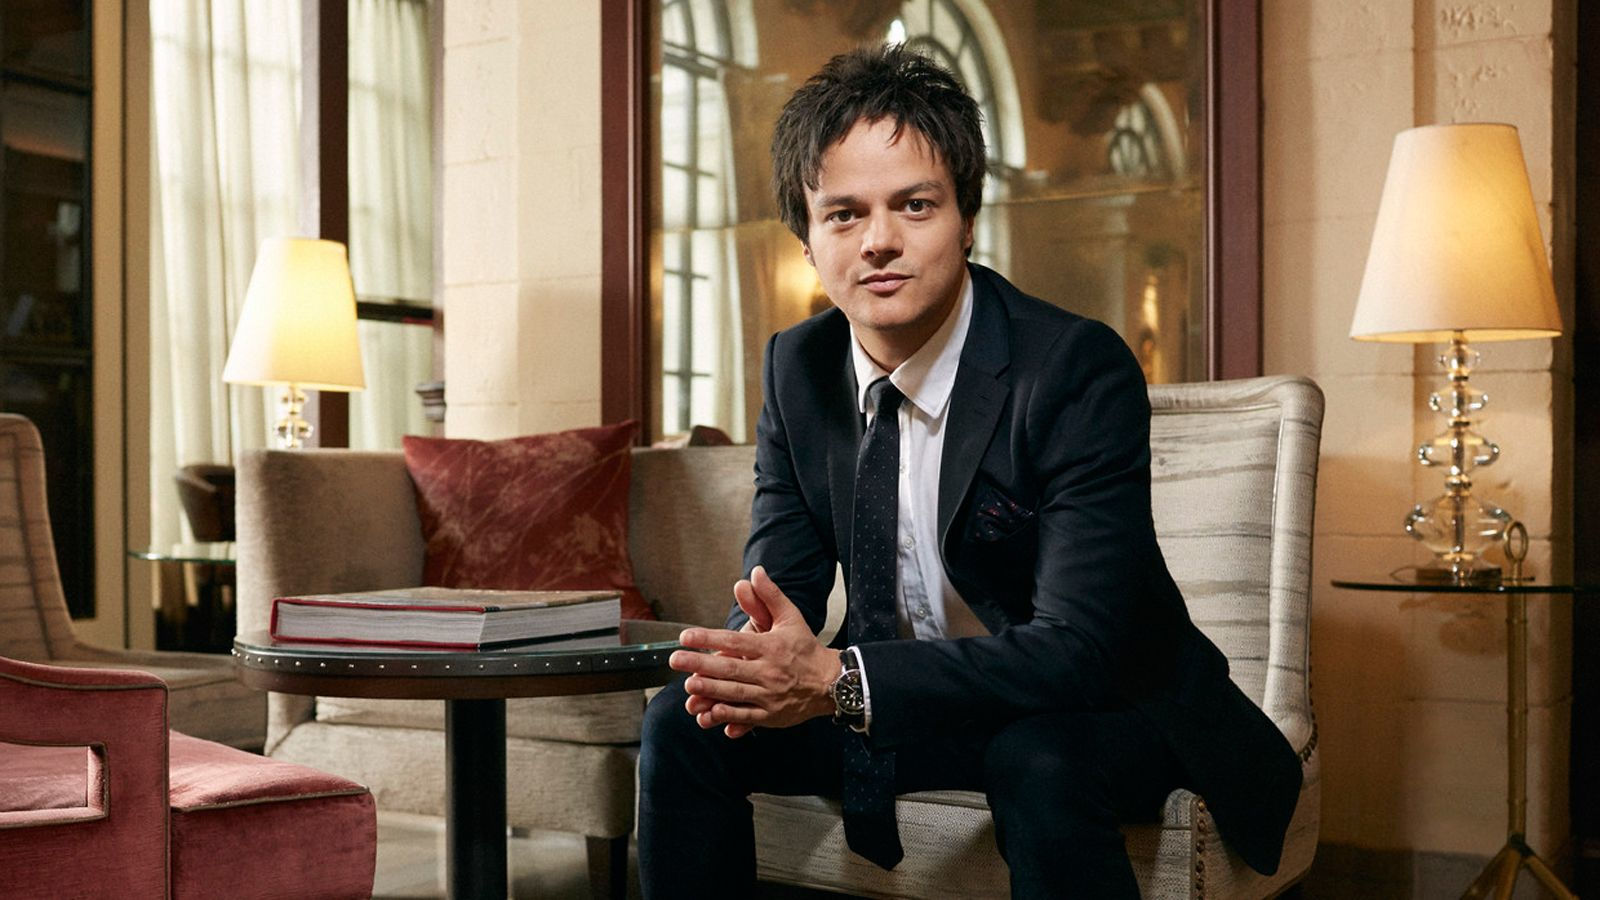 Jazz Concerts in Moscow | Jamie Cullum Concert in Moscow